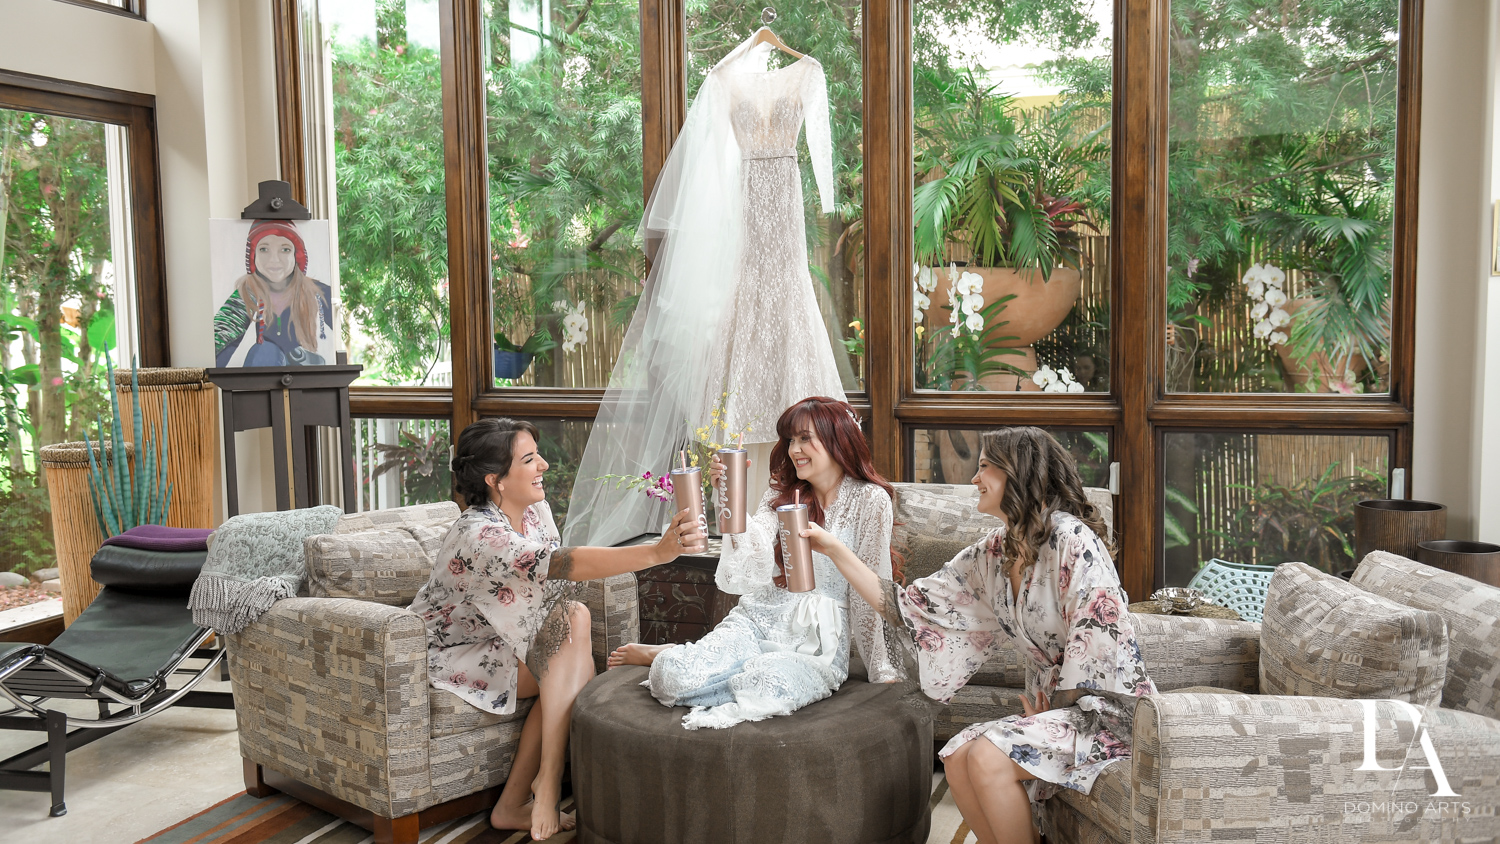 bridesmaids getting ready at Vintage Garden Wedding at Flagler Museum Palm Beach by Domino Arts Photography